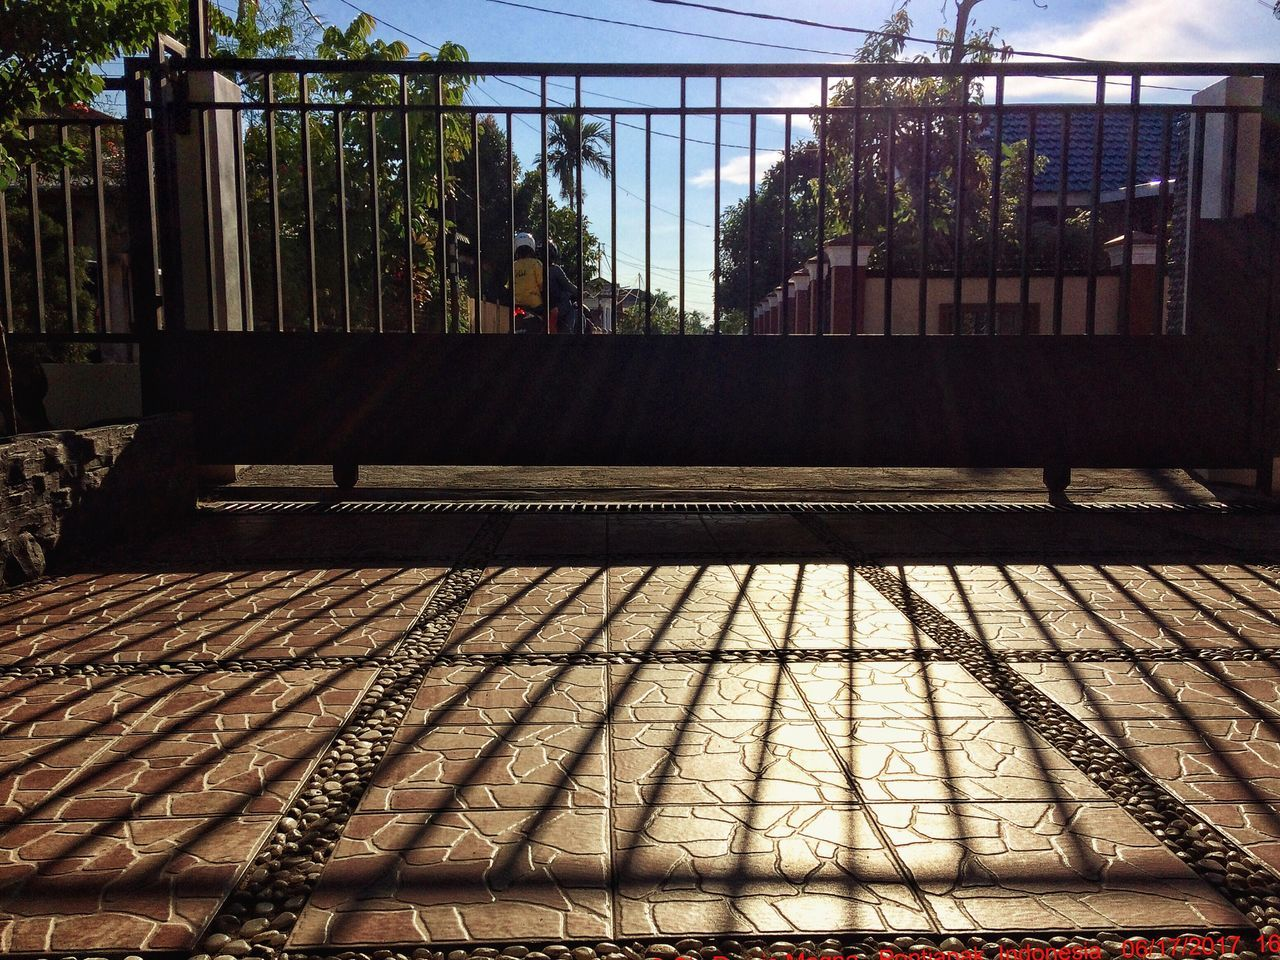 day, sunlight, railroad track, no people, outdoors, architecture, sky